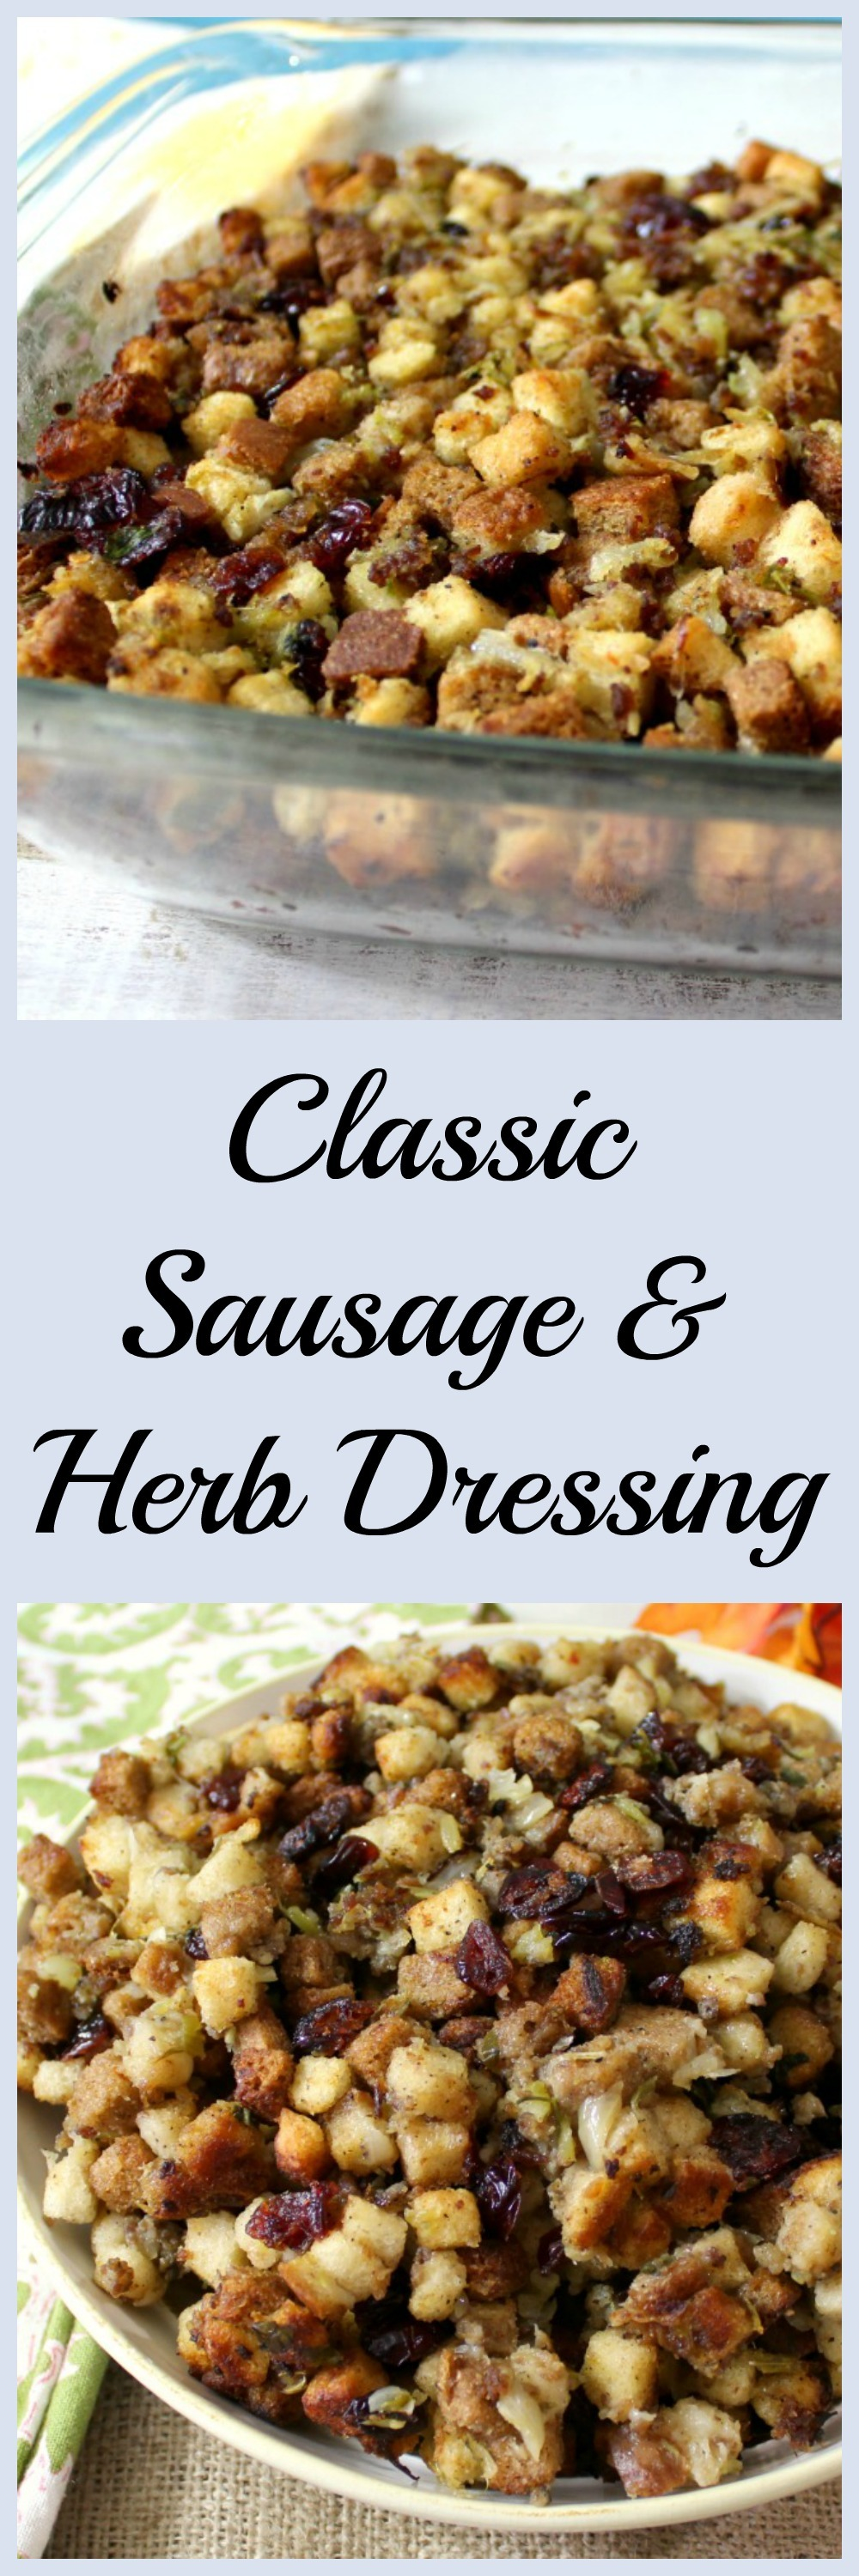 Classic Sausage and Herb Dressing